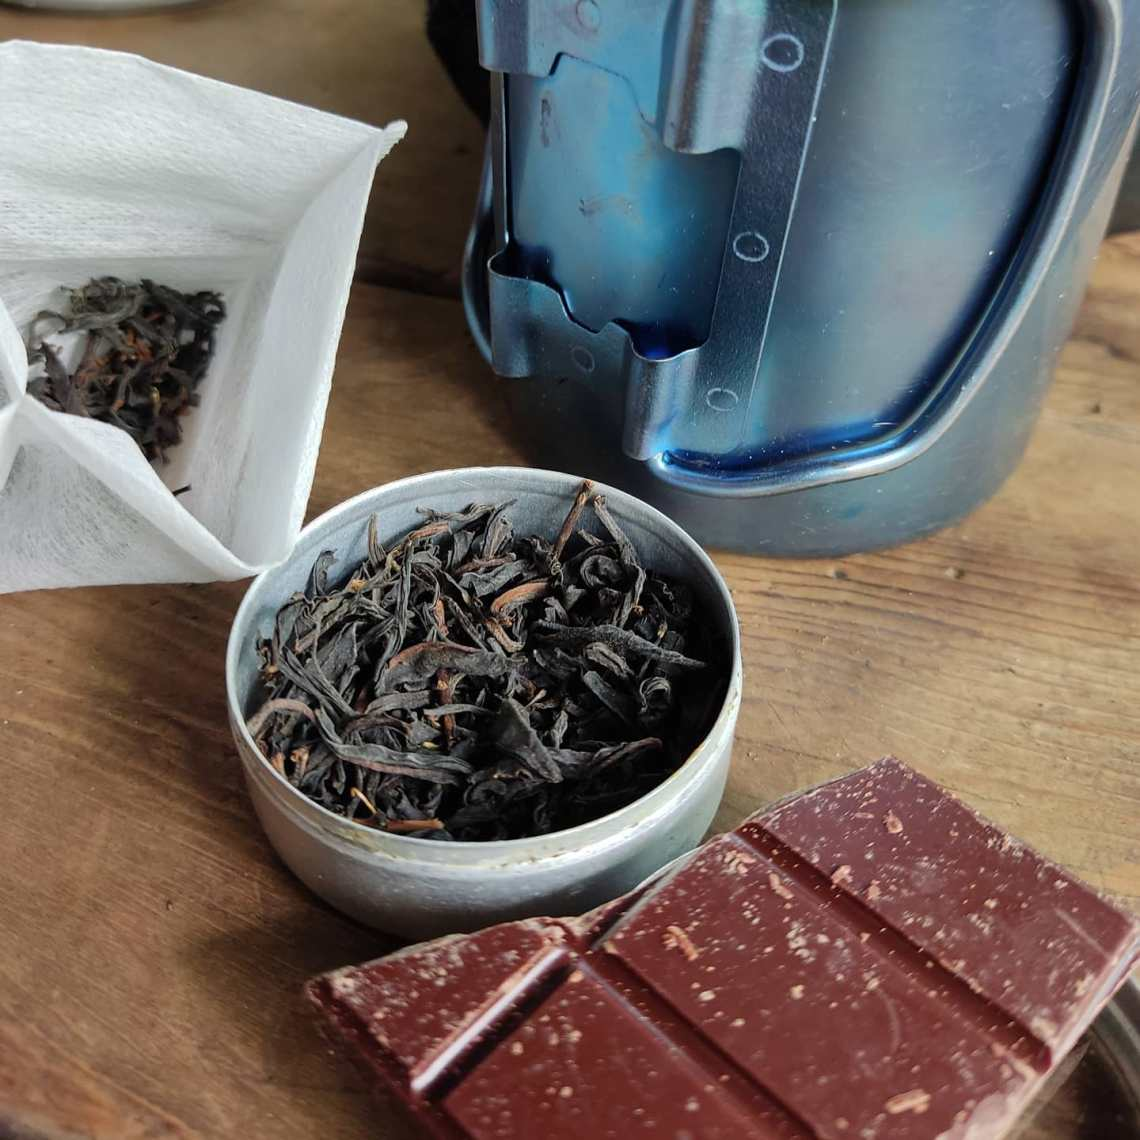 CHOCOLATE and Formosa Mixiang black tea, and because a week backpacking doesn't mean roughing it. The sure is poor house made Tanzania. #chocolatier #appalachiantrail @redblossomteacompany #trailfood